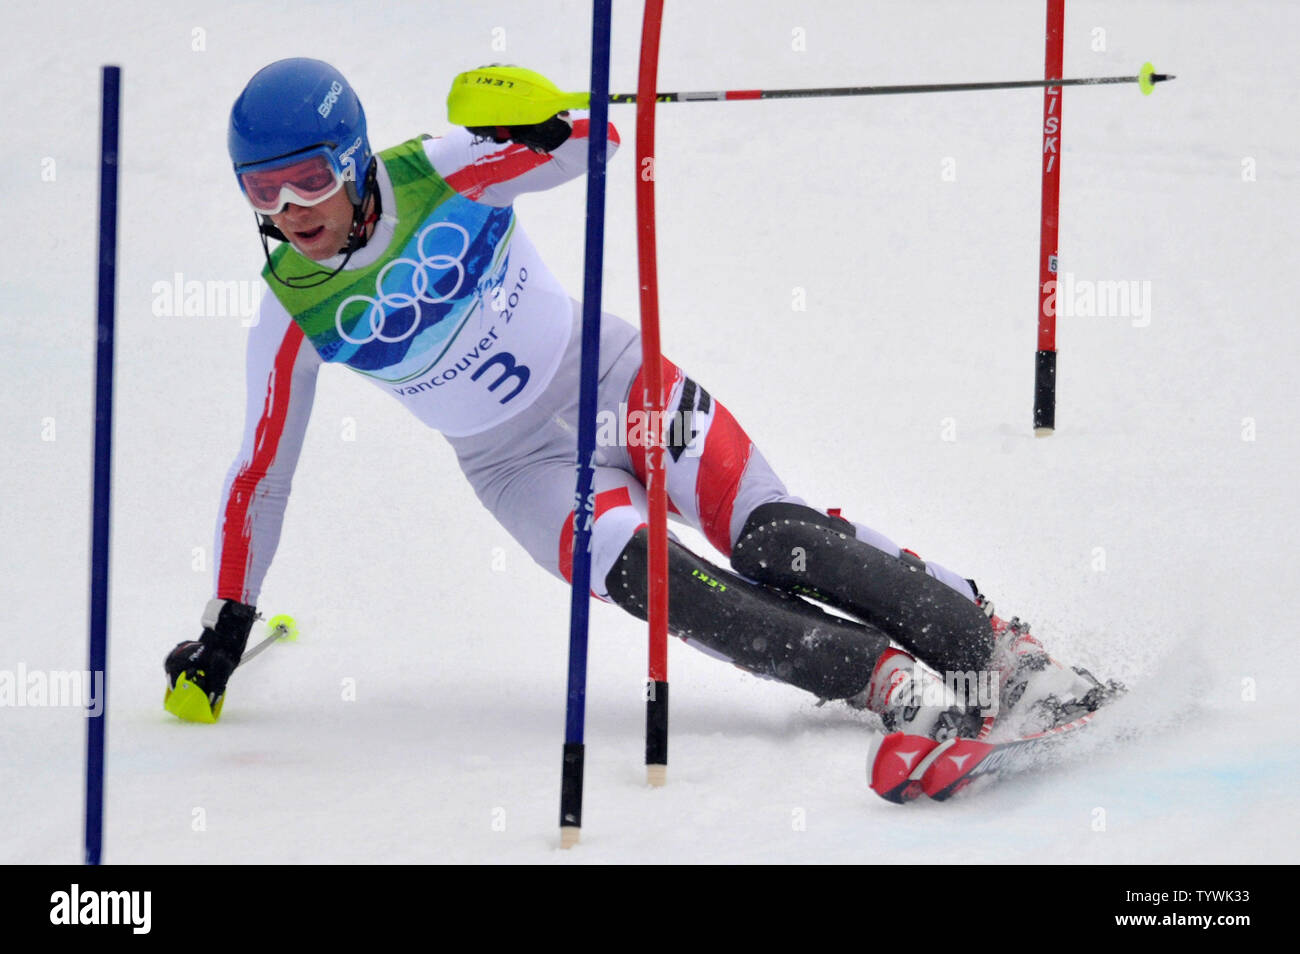 Austria's Benjamin Raich competes in the Men's' Slalom during the 2010 Vancouver Winter Olympics in Whistler, Canada on February 27, 2010.  UPI/Kevin Dietsch Stock Photo